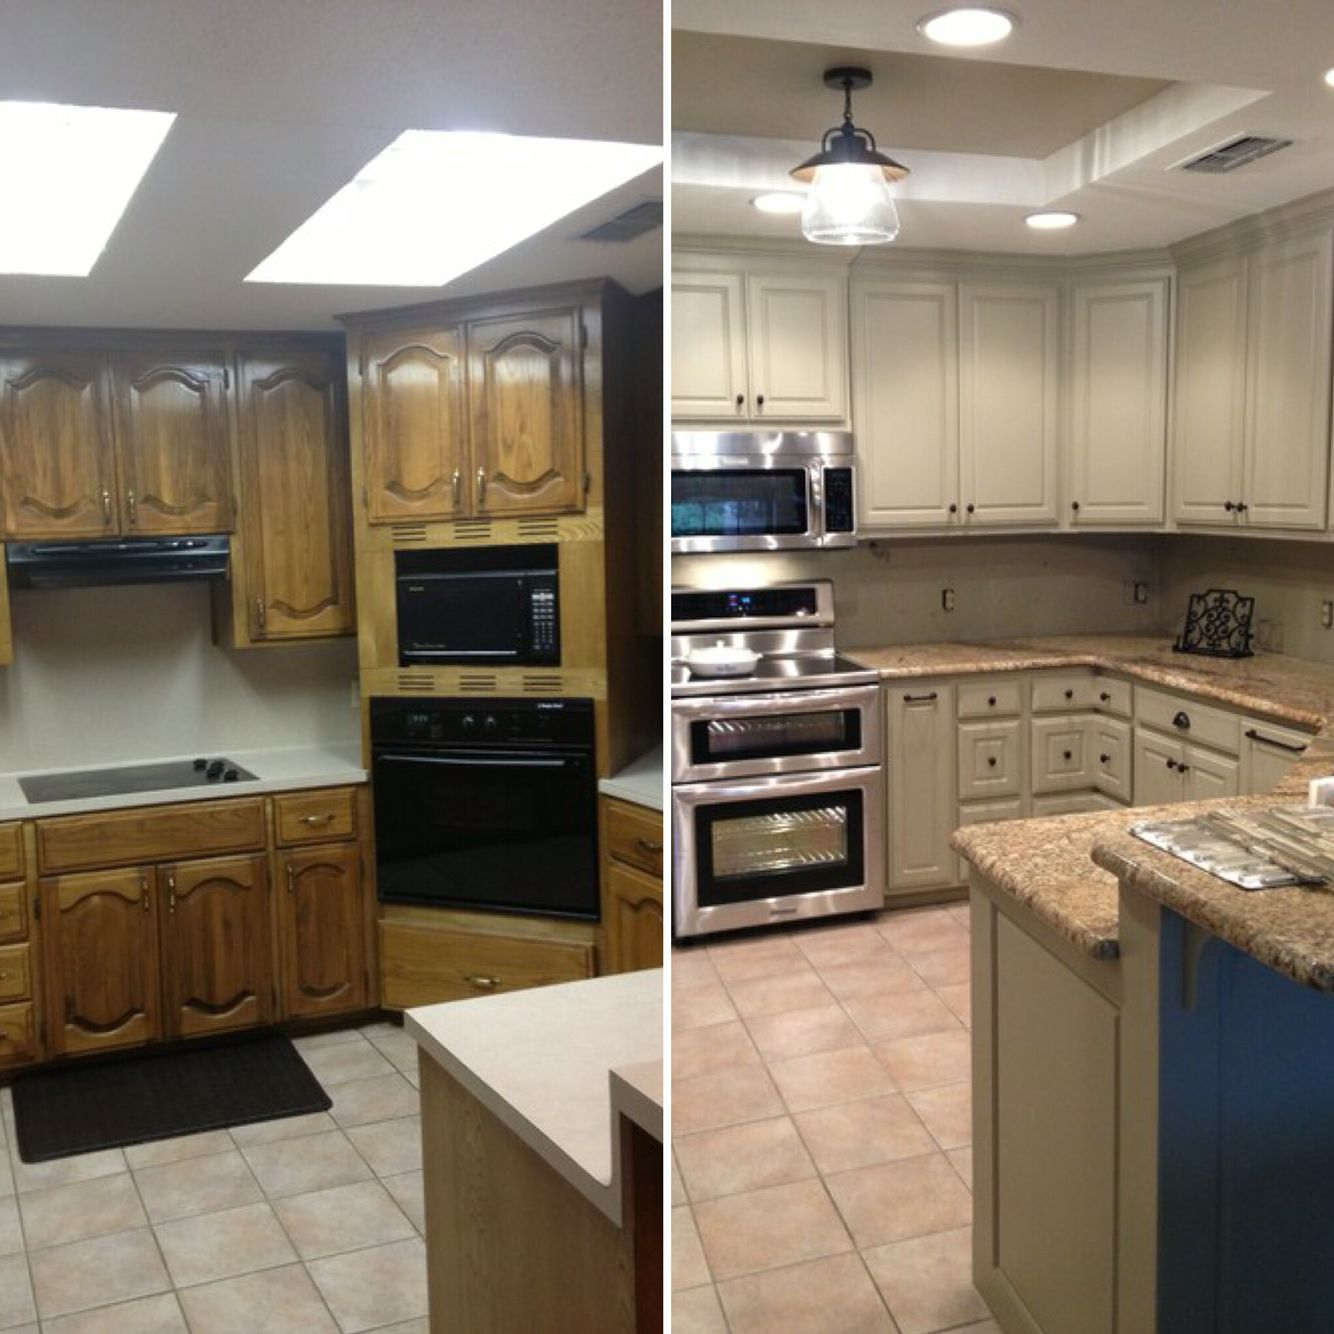 fluorescent kitchen lights when remove RECESSED fluorescent light box how to fix keep the existing side moulding patch the hole then put moulding on INSIDE of box